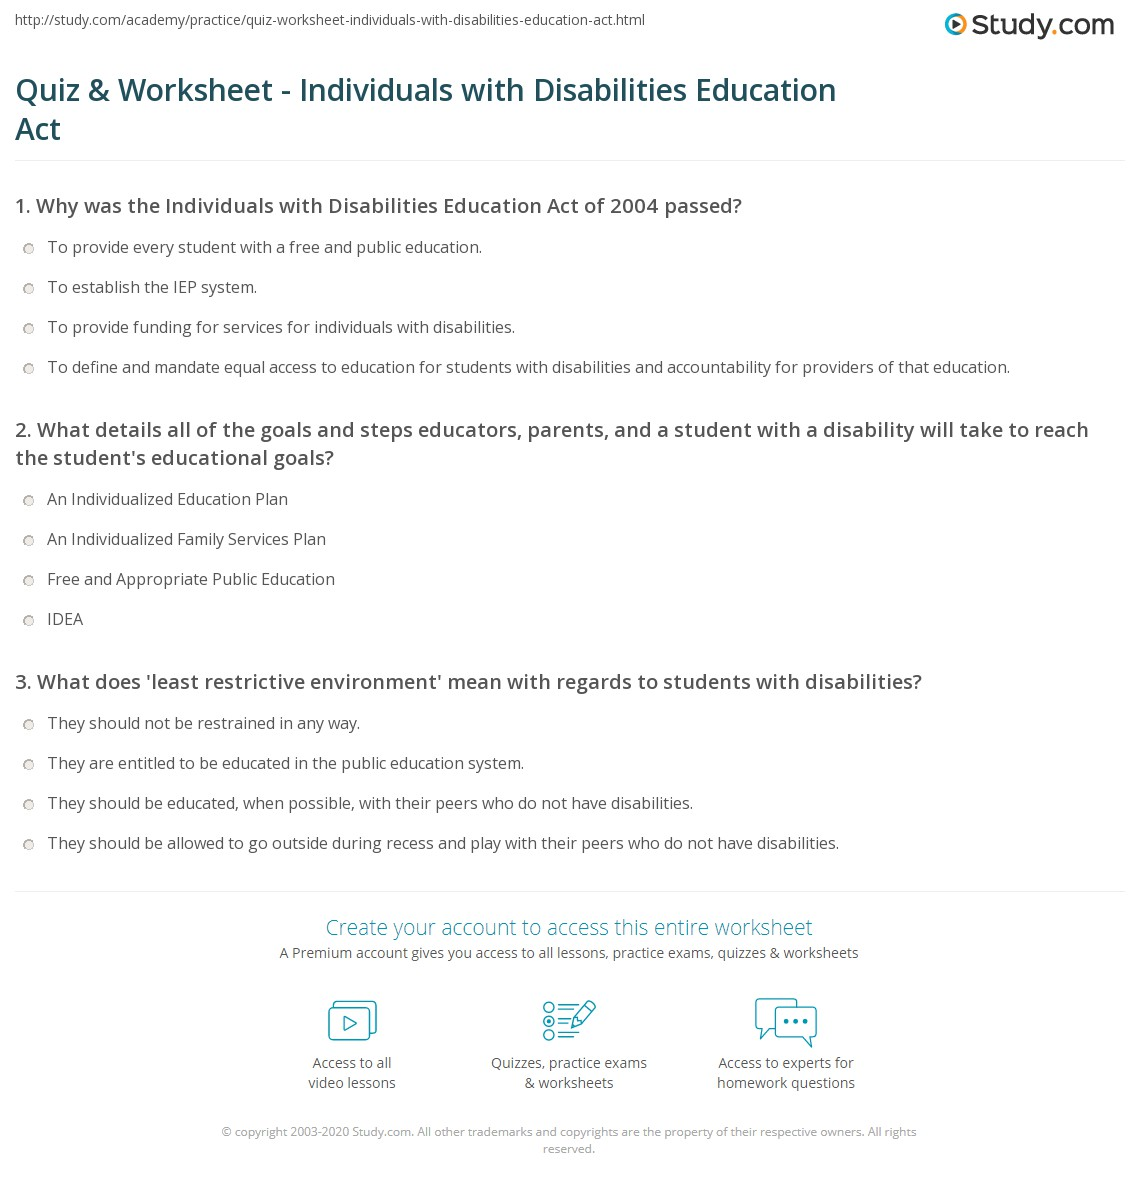 Quiz worksheet individuals with disabilities education act what details all of the goals and steps educators parents and a student with a disability will take to reach the students educational goals xflitez Choice Image